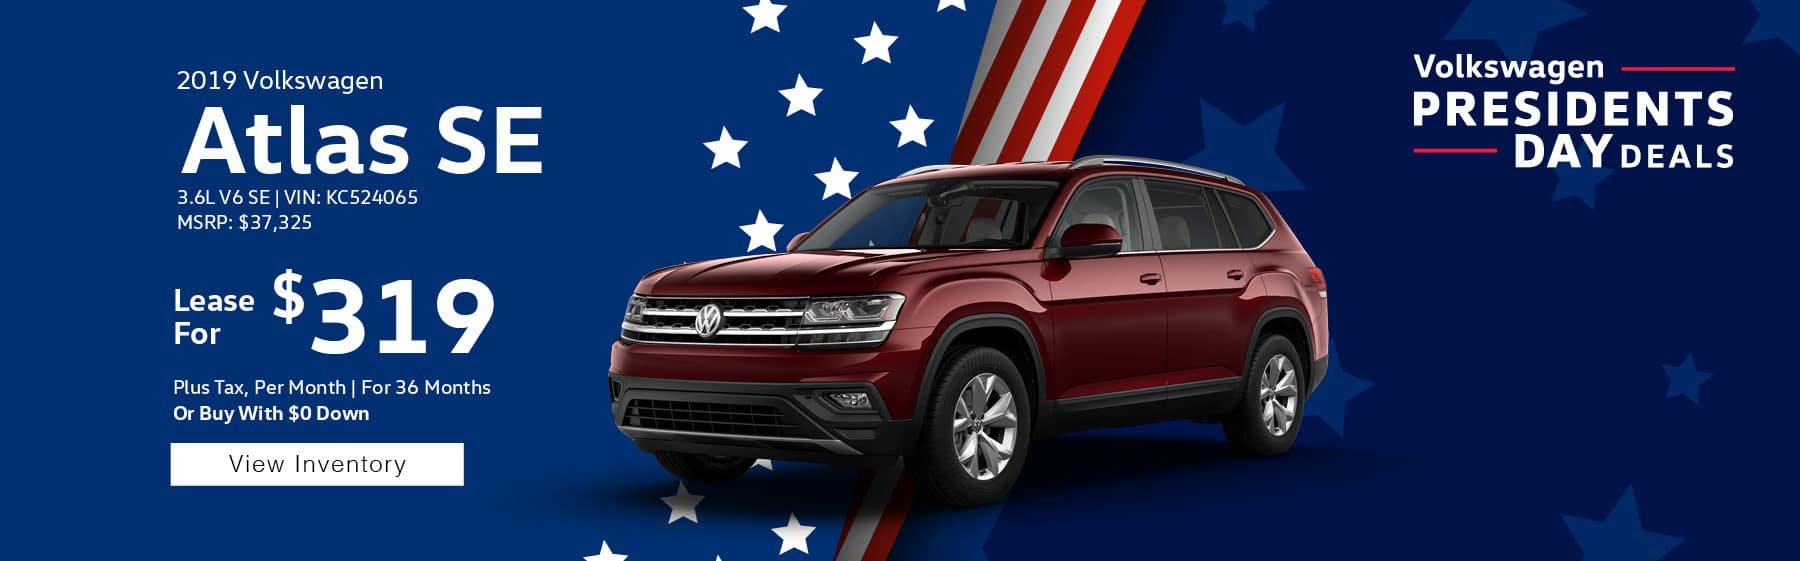 Lease the 2019 Volkswagen Atlas SE V6 for only $319 per month, plus tax for 39 months. $1,895 down payment required.